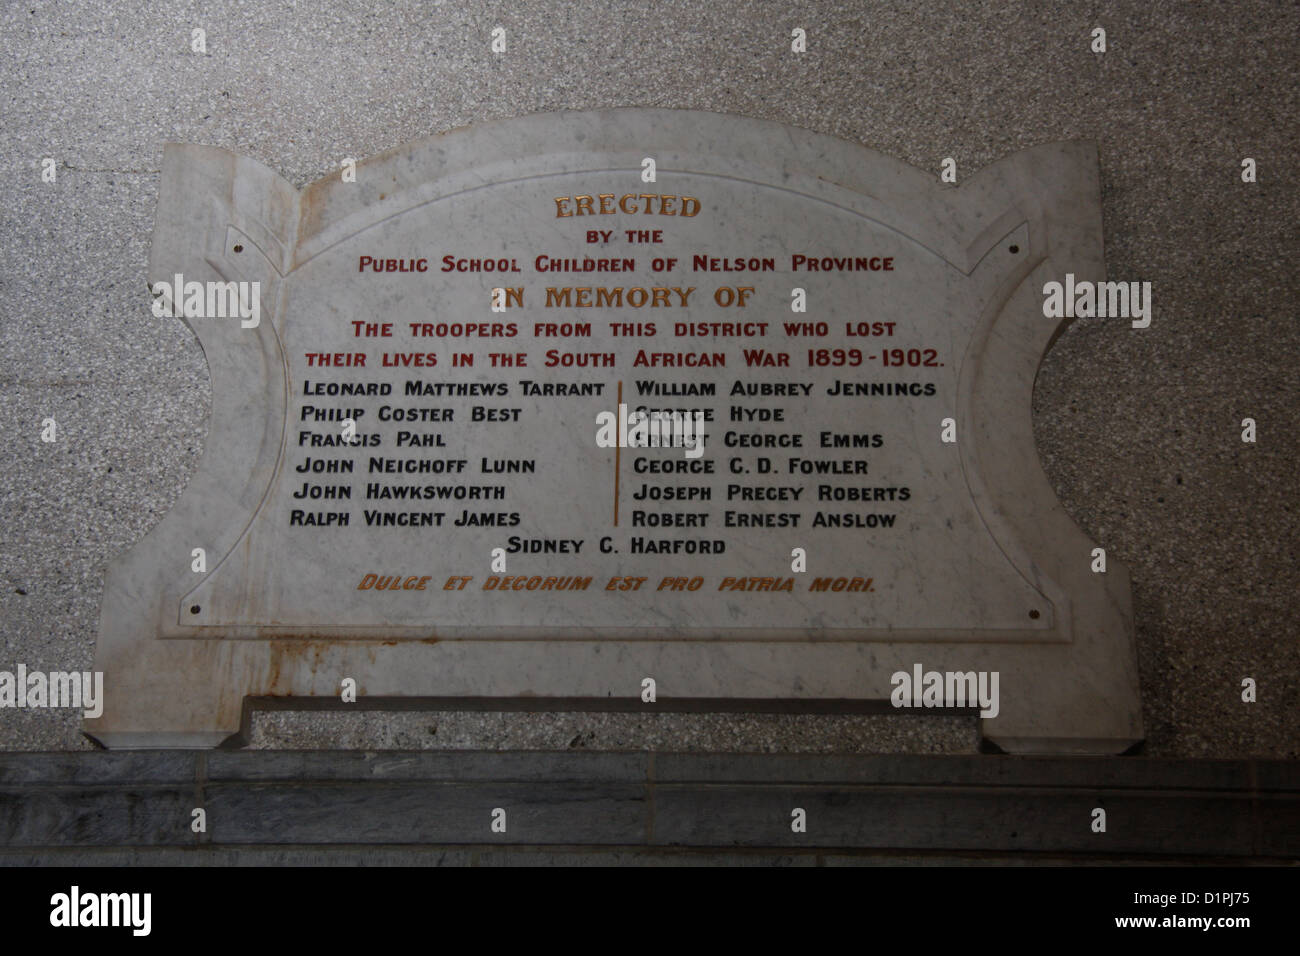 A plaque in memory of the soldiers who died in the South African War 1899-1902, inside Christ Church Cathedral in - Stock Image